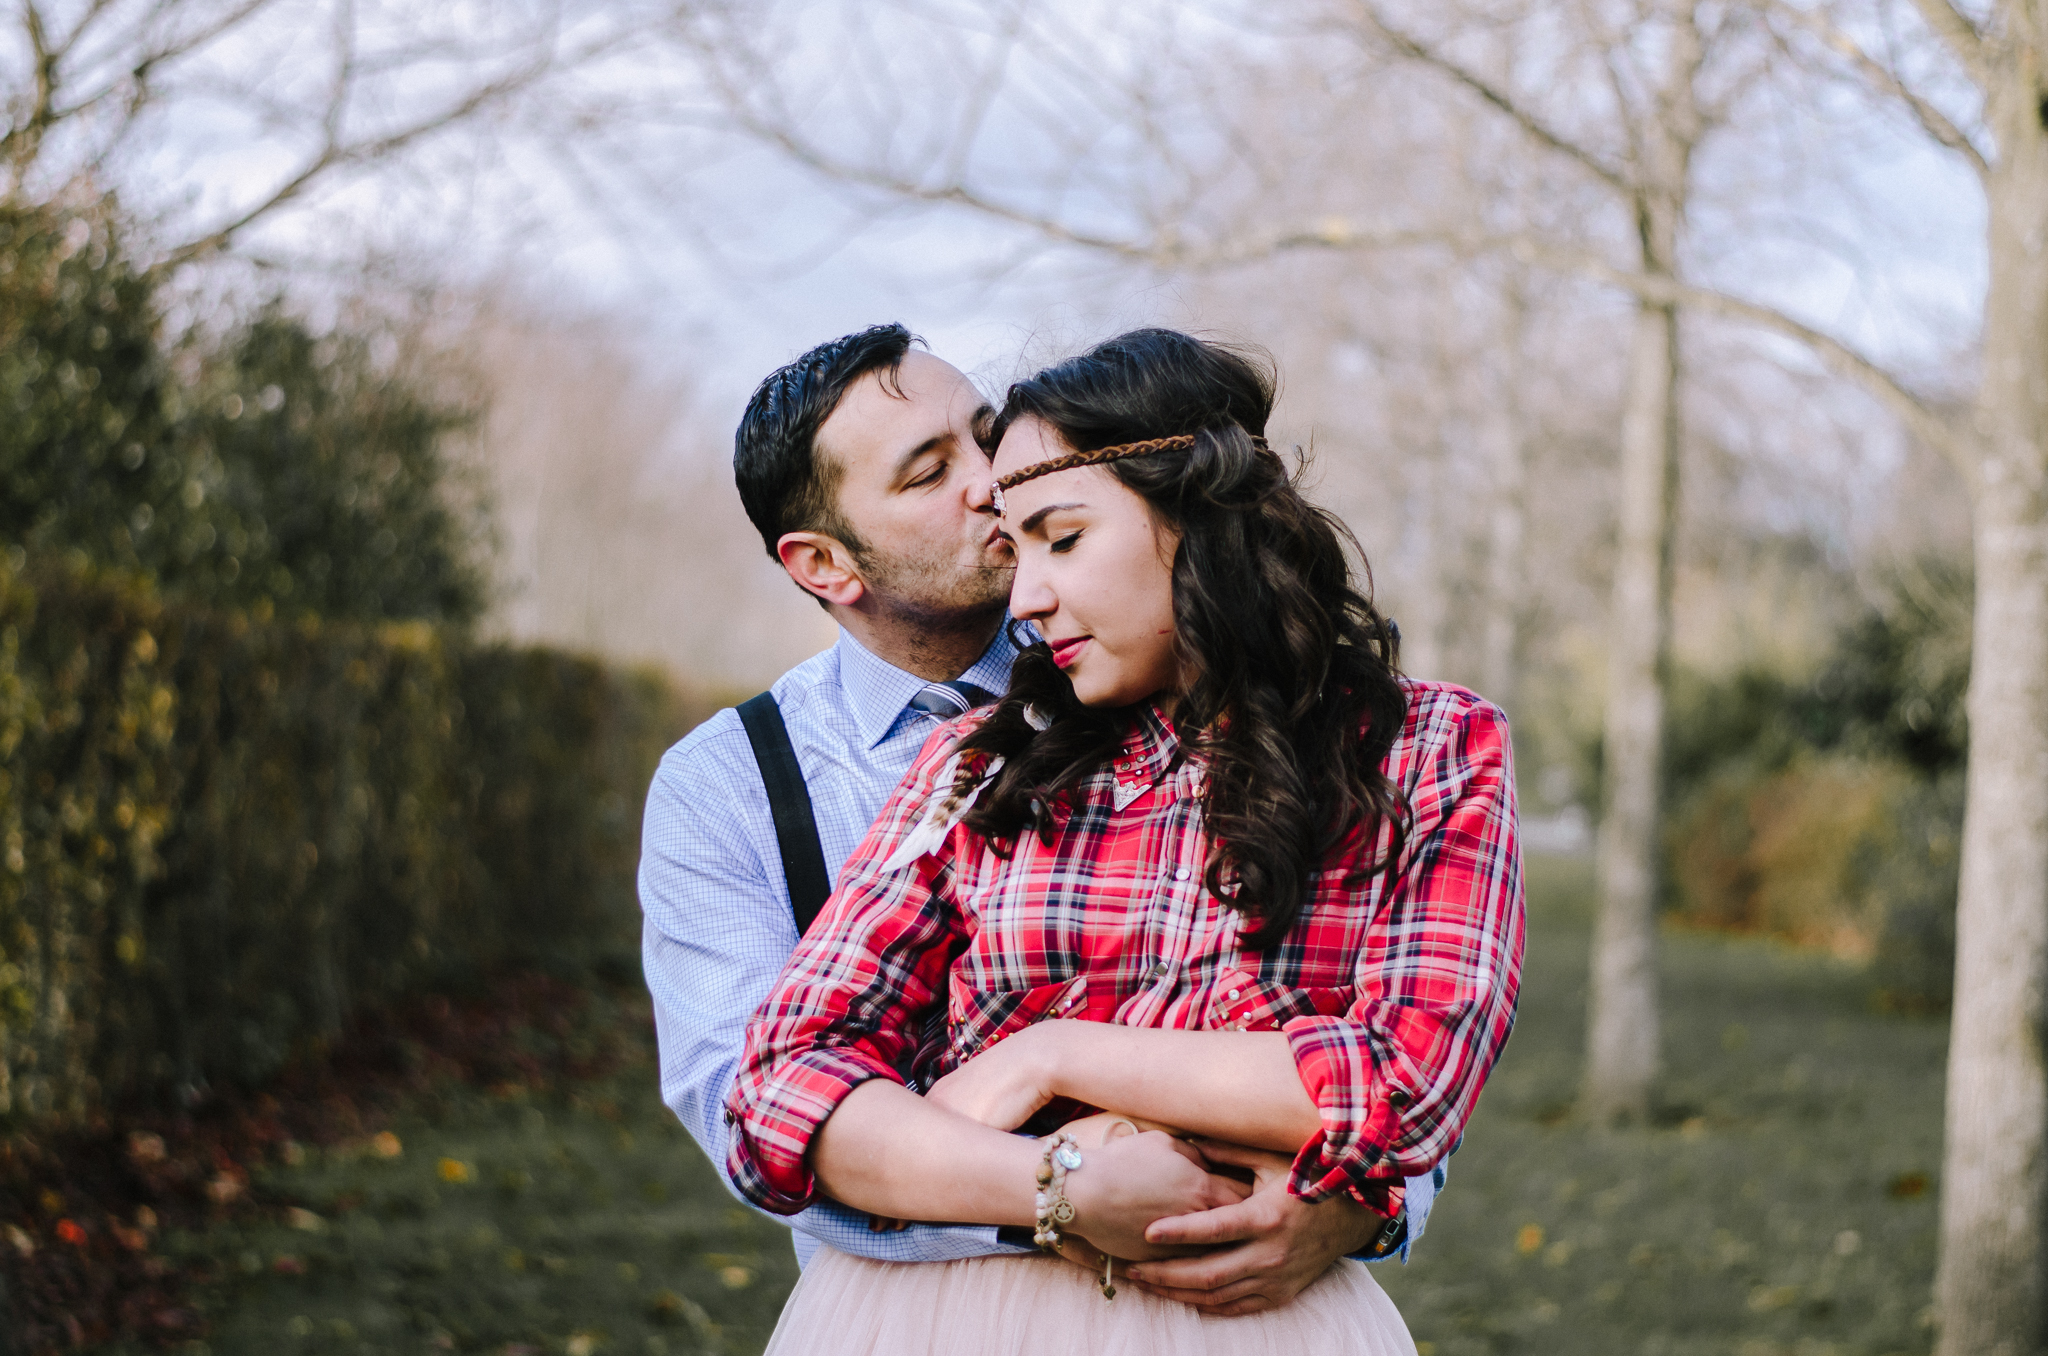 4 Reasons To Have An Engagement Shoot